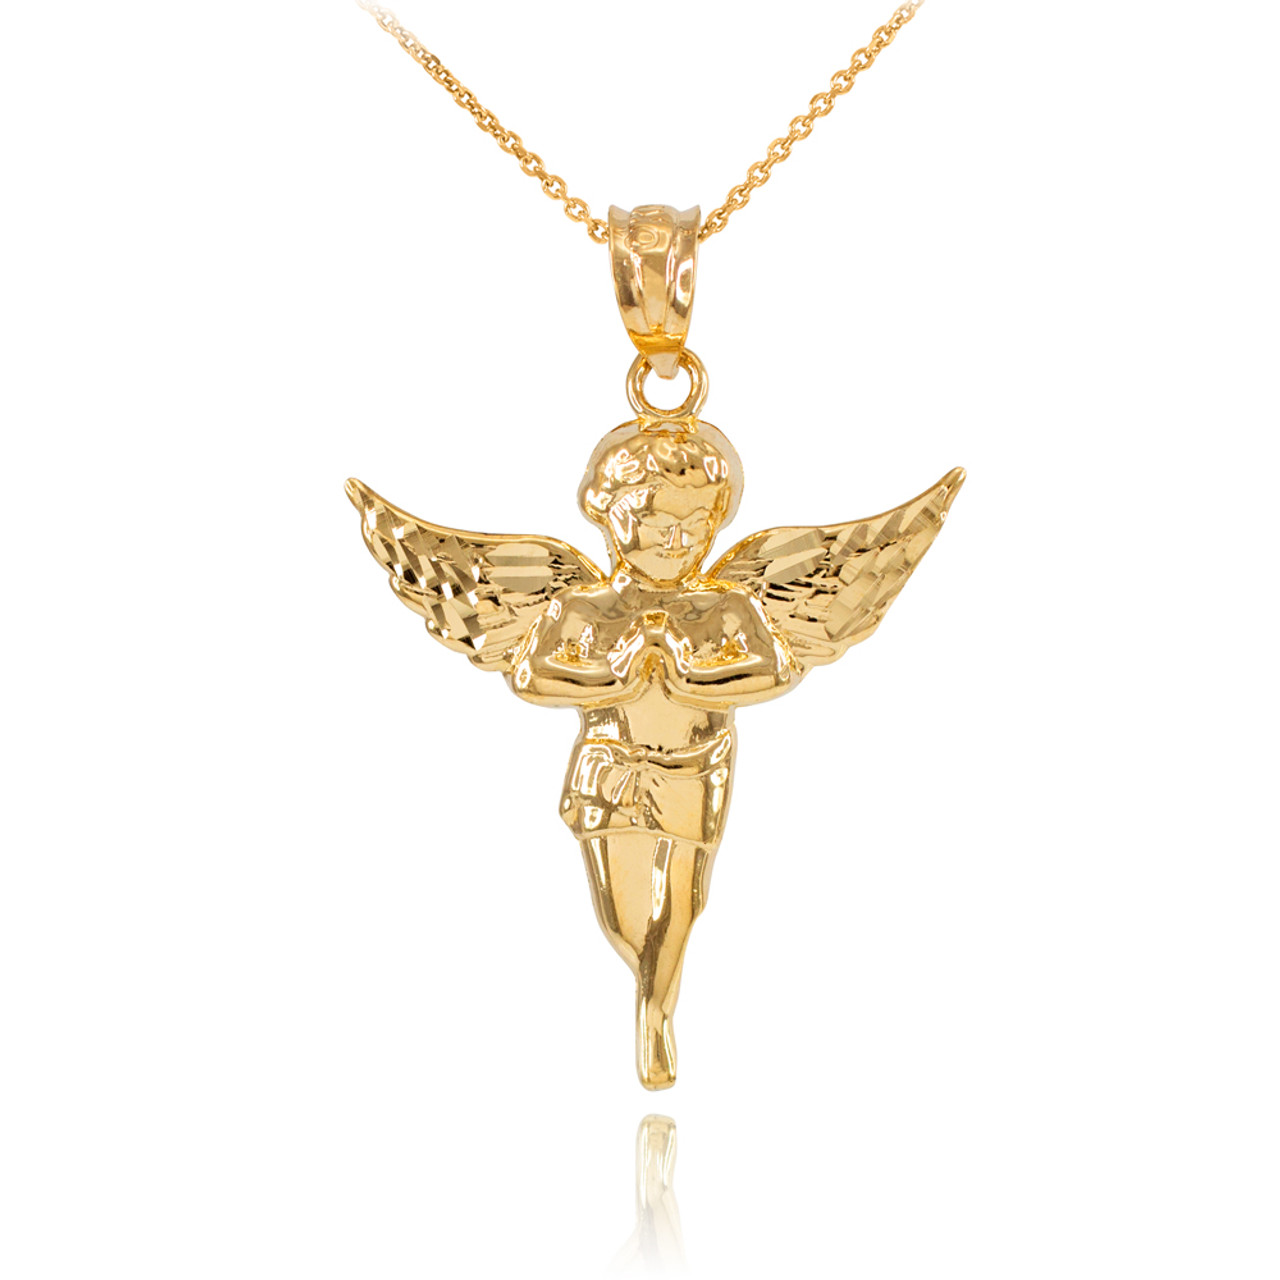 14K Yellow Gold Jewelry Pendants /& Charms Solid Polished Cut-out Angel Pendant